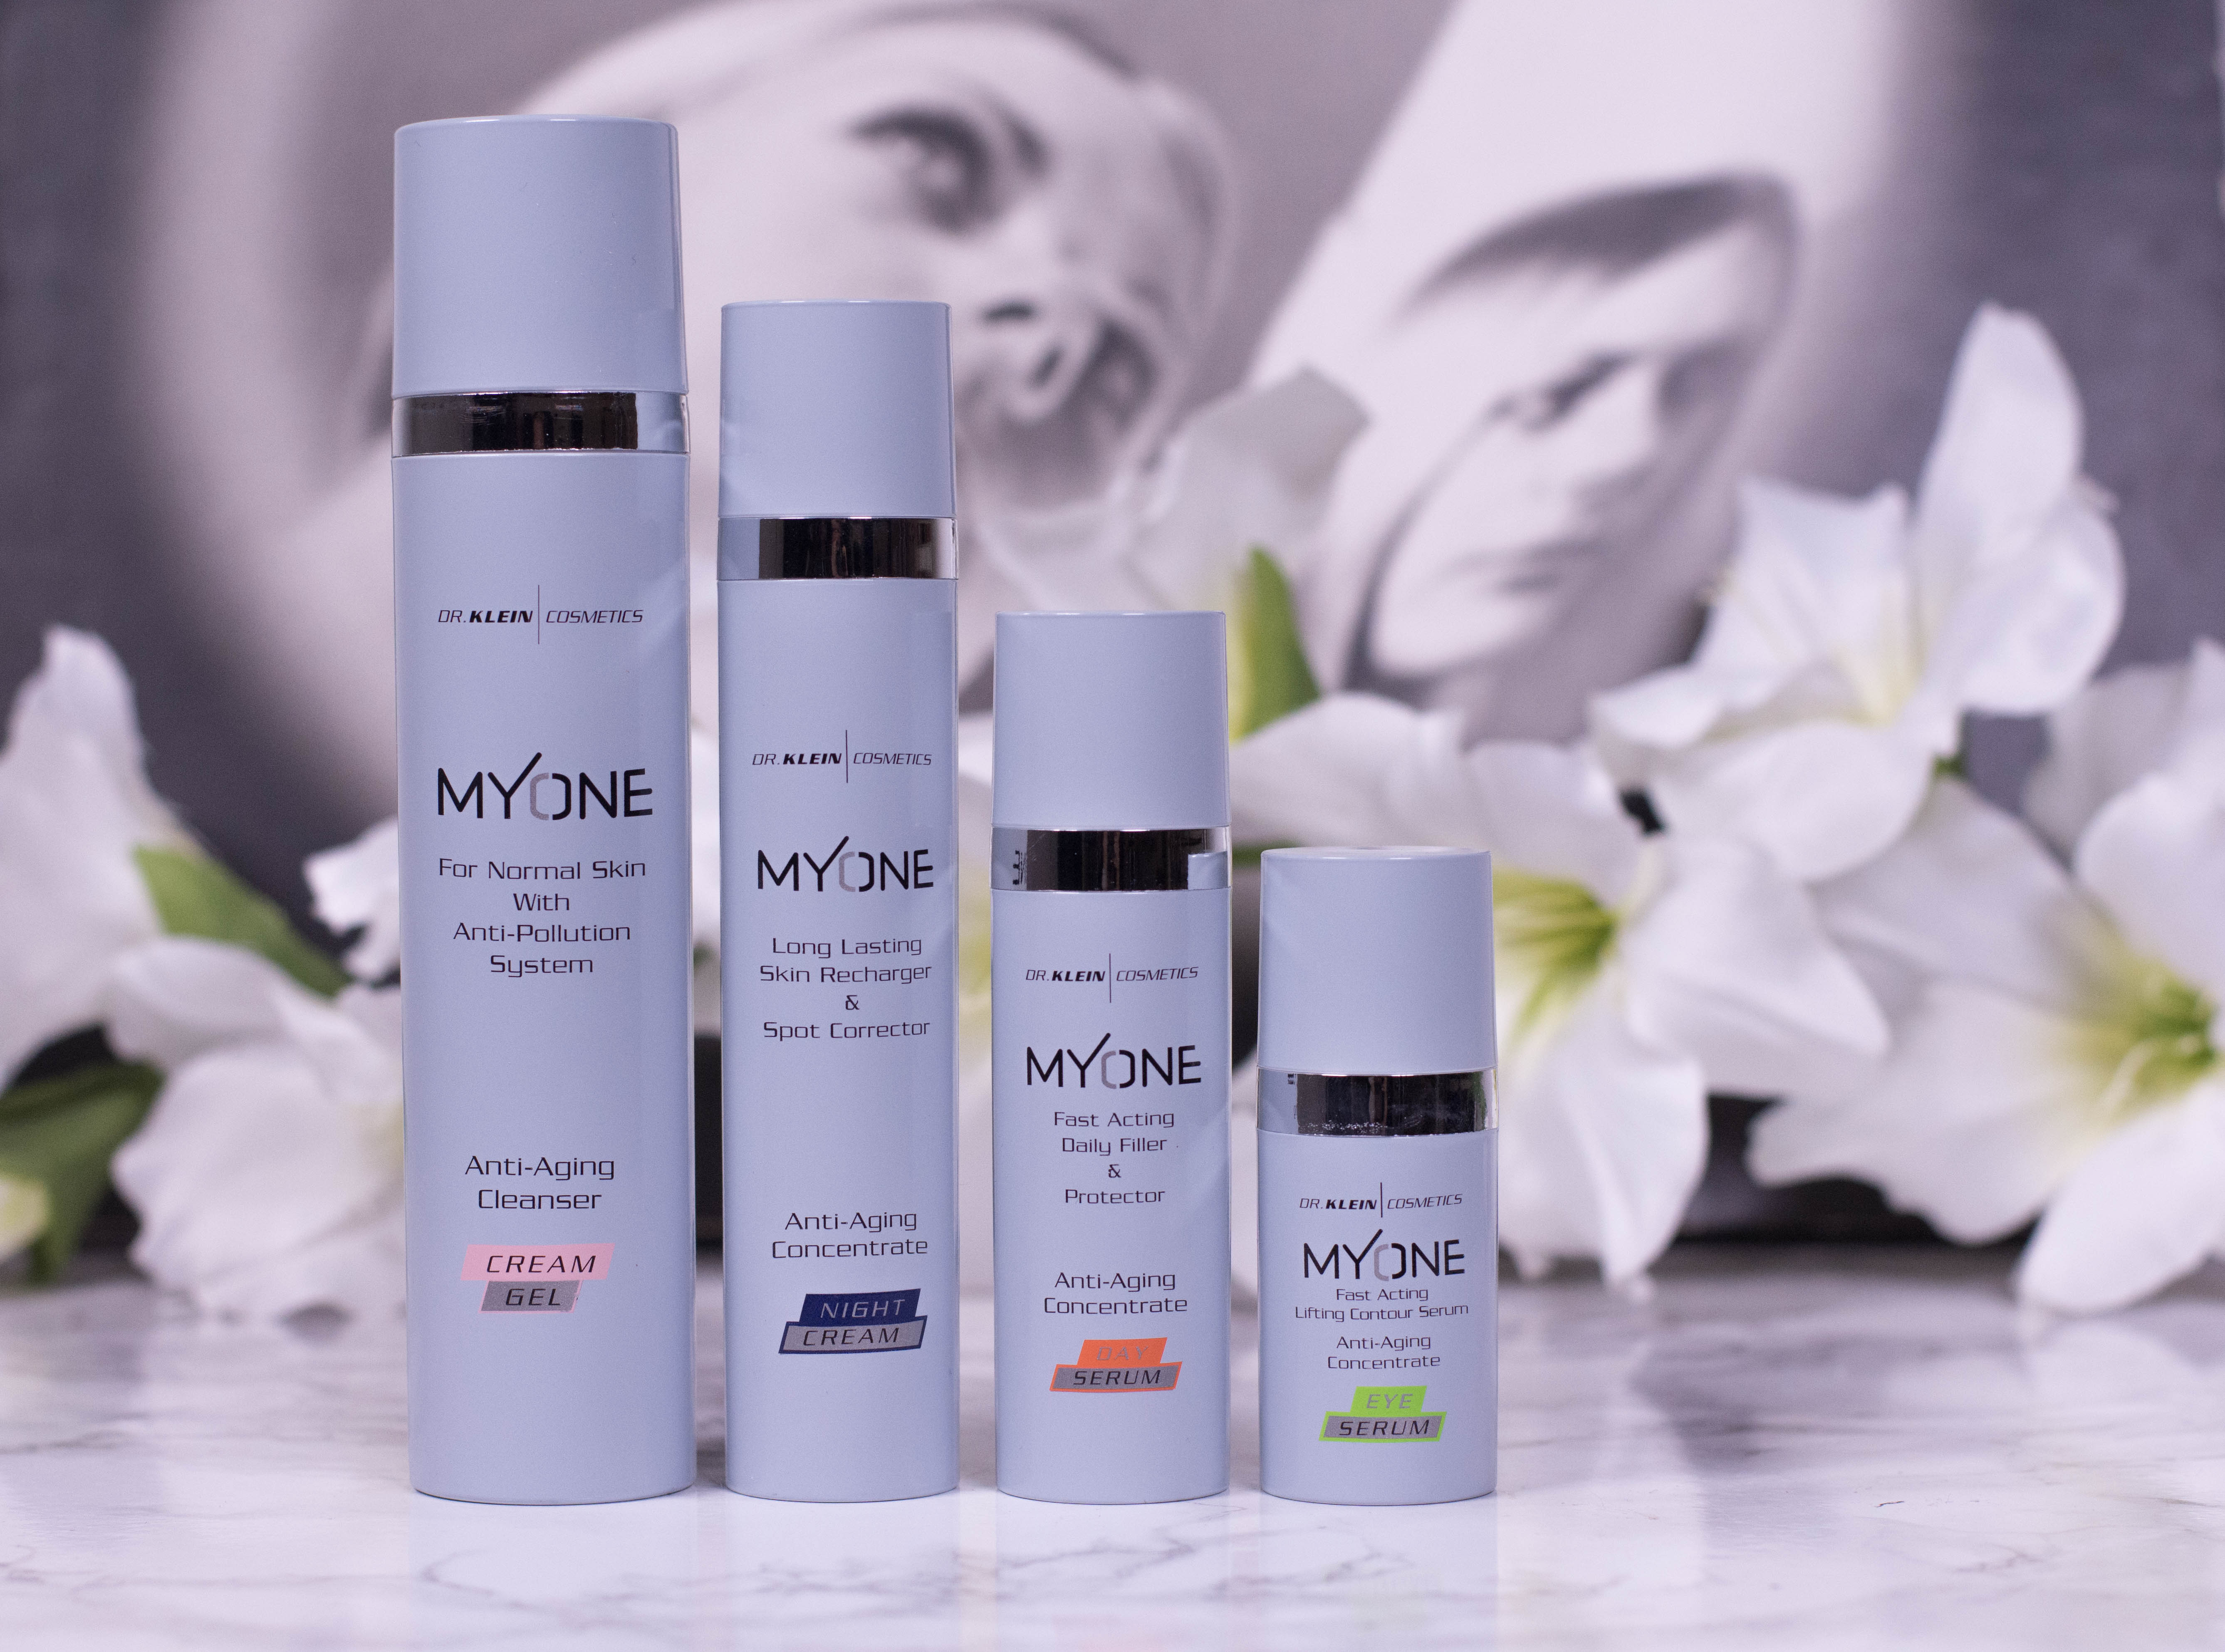 My One 24h Anti-Aging System